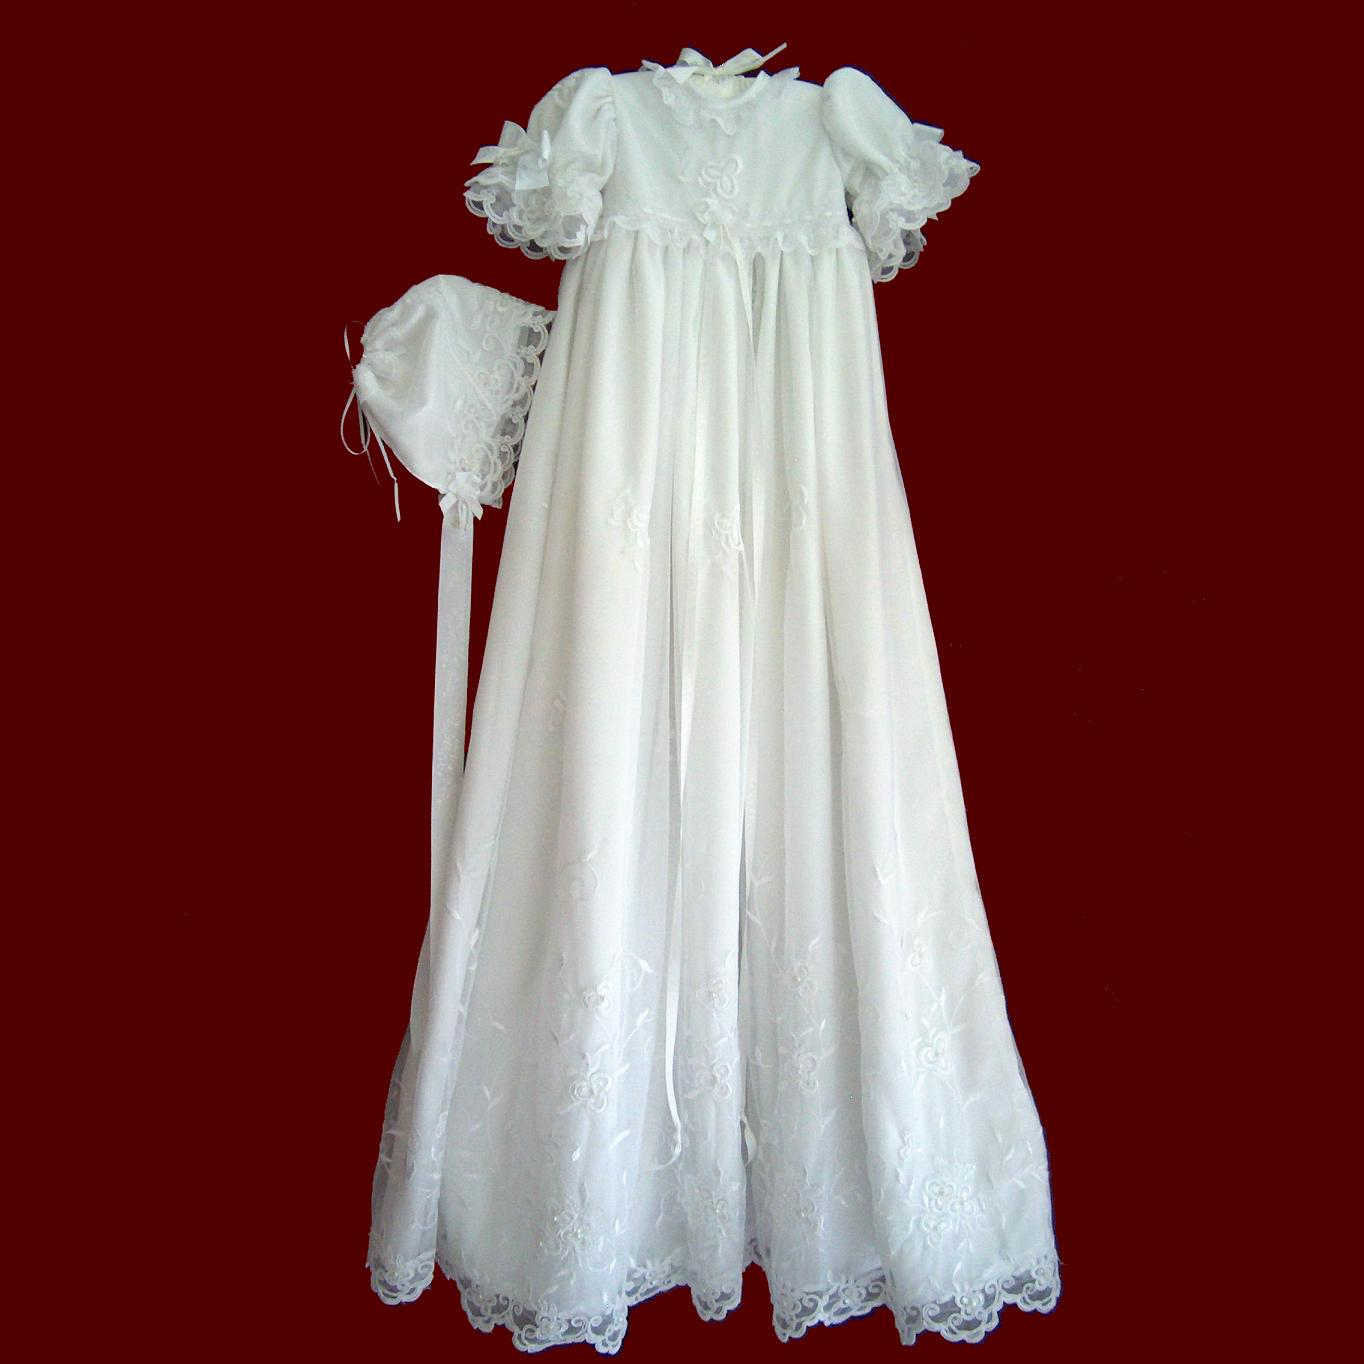 Beaded and Embroidered Netting Girls Designer Christening Gown ...